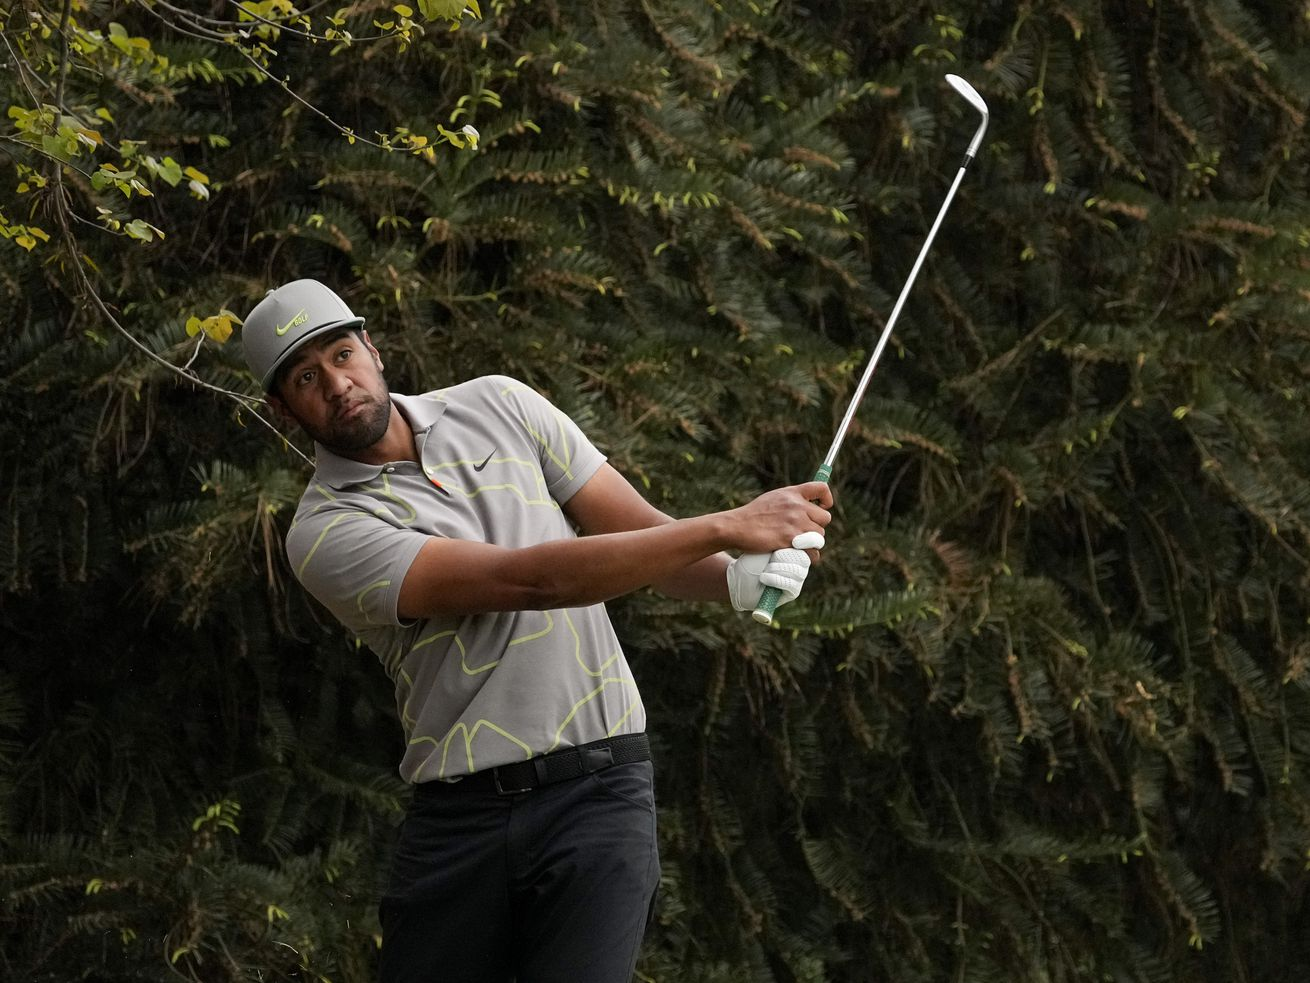 Double bogeys spoil promising rounds for Utahns Tony Finau, Mike Weir as 2021 Masters begins